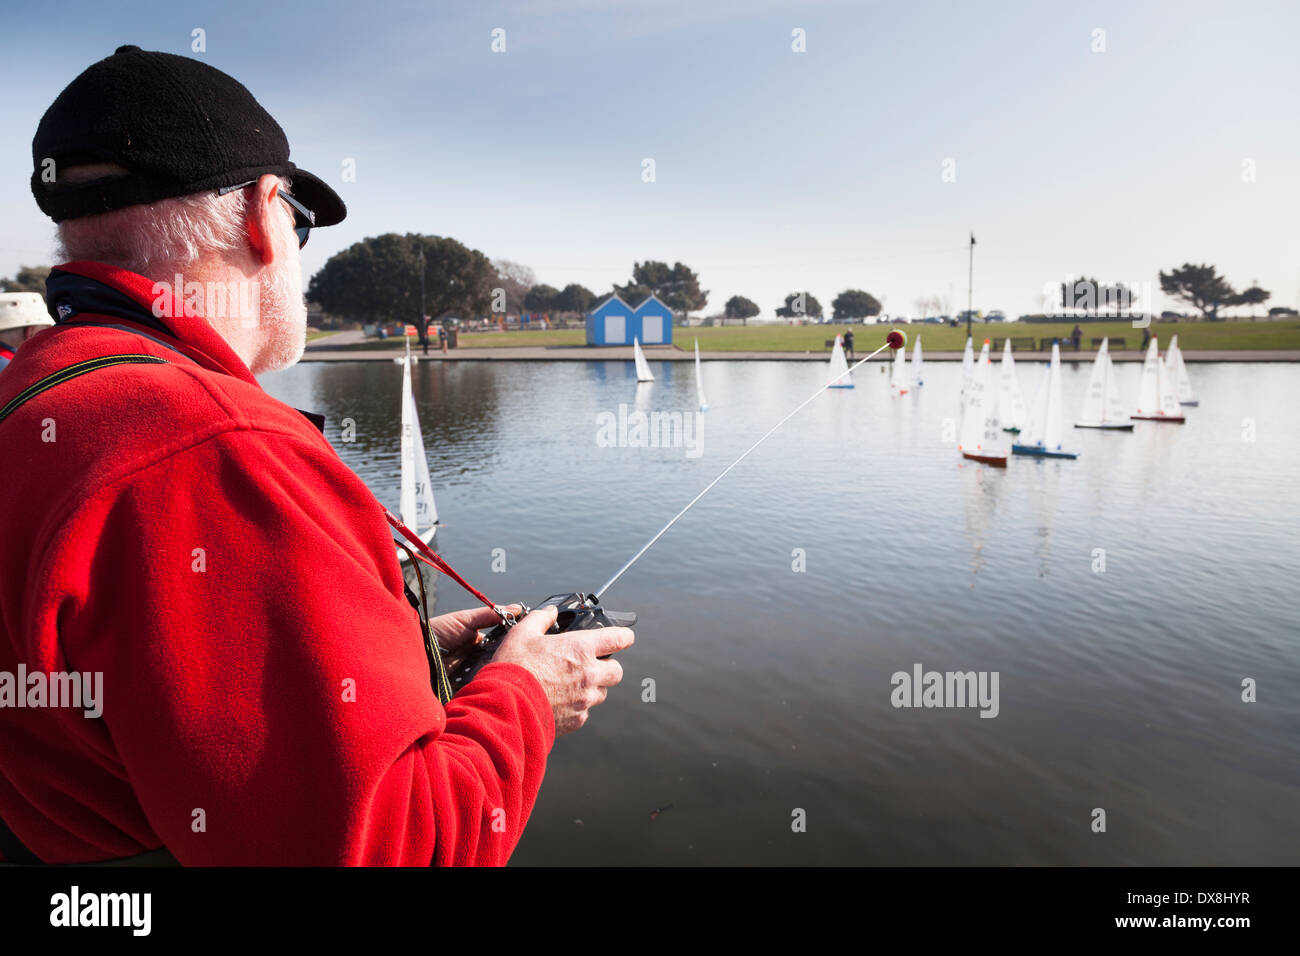 Radio controlled model yacht enthusiasts racing on Canoe Lake Southsea. - Stock Image